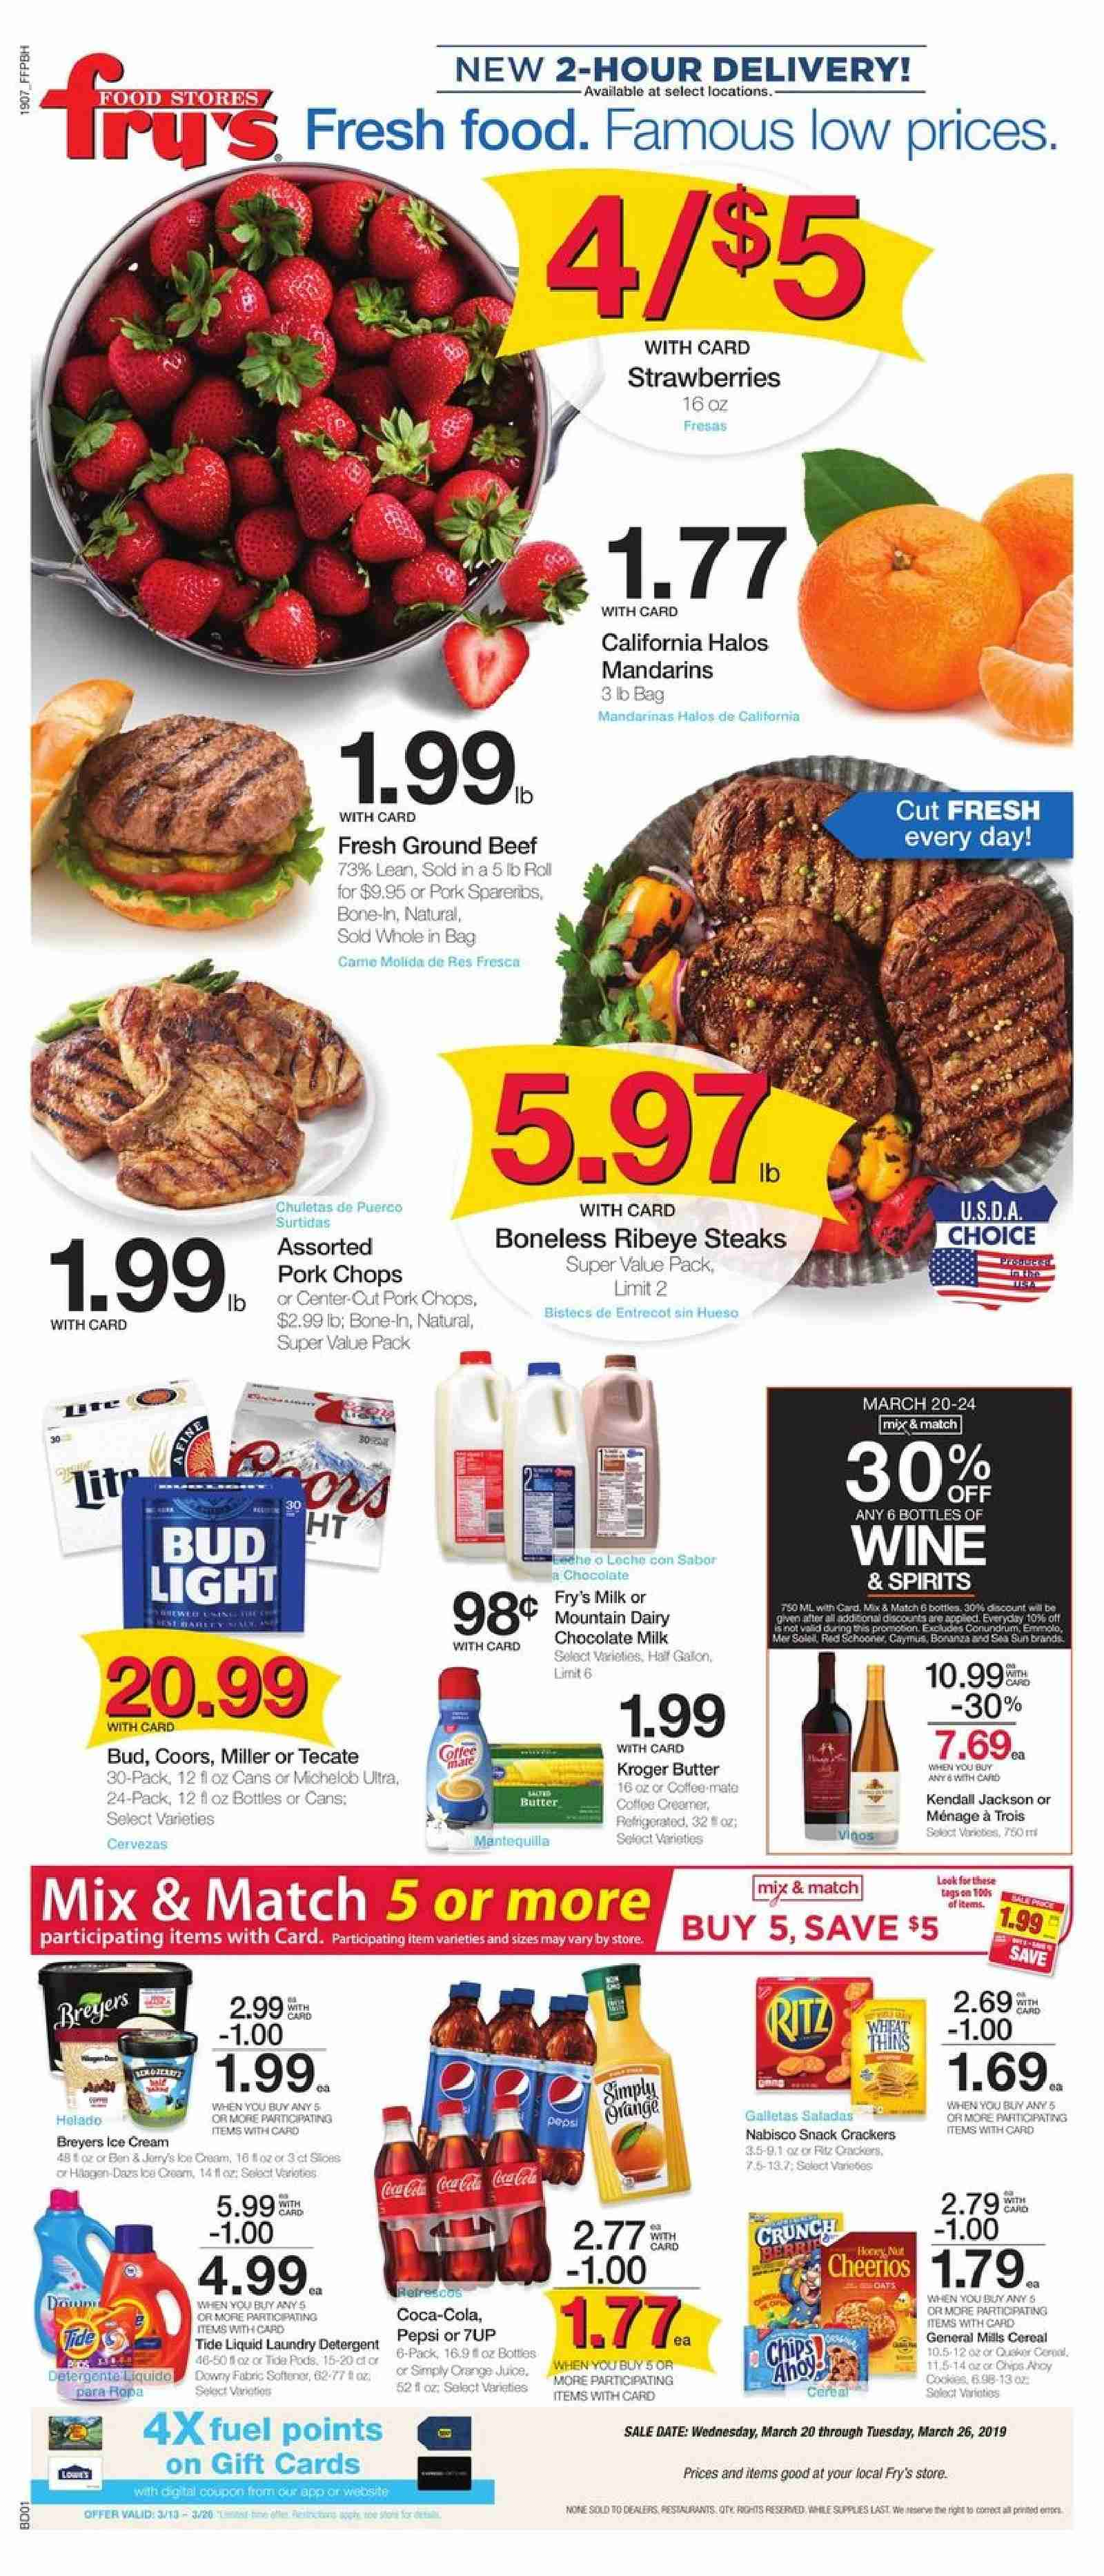 Fry's Flyer - 03.20.2019 - 03.26.2019 - Sales products - Bud Light, Coors, Michelob, strawberries, milk, chocolate milk, coffee creamer, butter, creamer, ice cream, cracker, crackers, chips, snack, cereals, Pepsi, juice, wine, beef meat, ground beef, pork chops, pork meat, detergent, Tide, laundry detergent. Page 1.